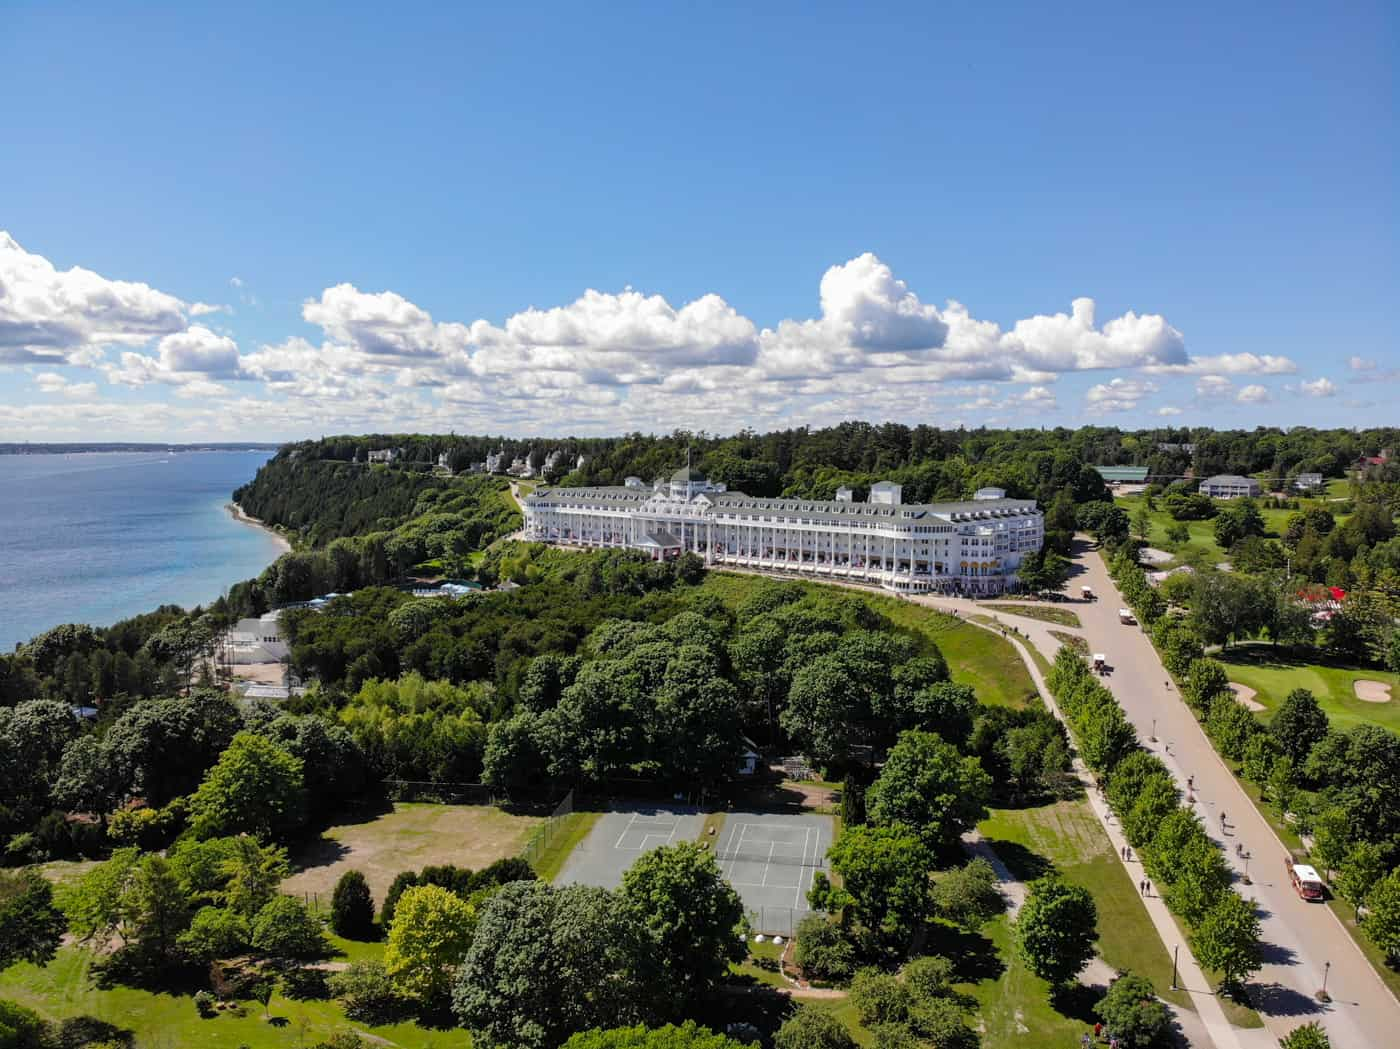 Aerial view of the Grand Hotel on Mackinac Island